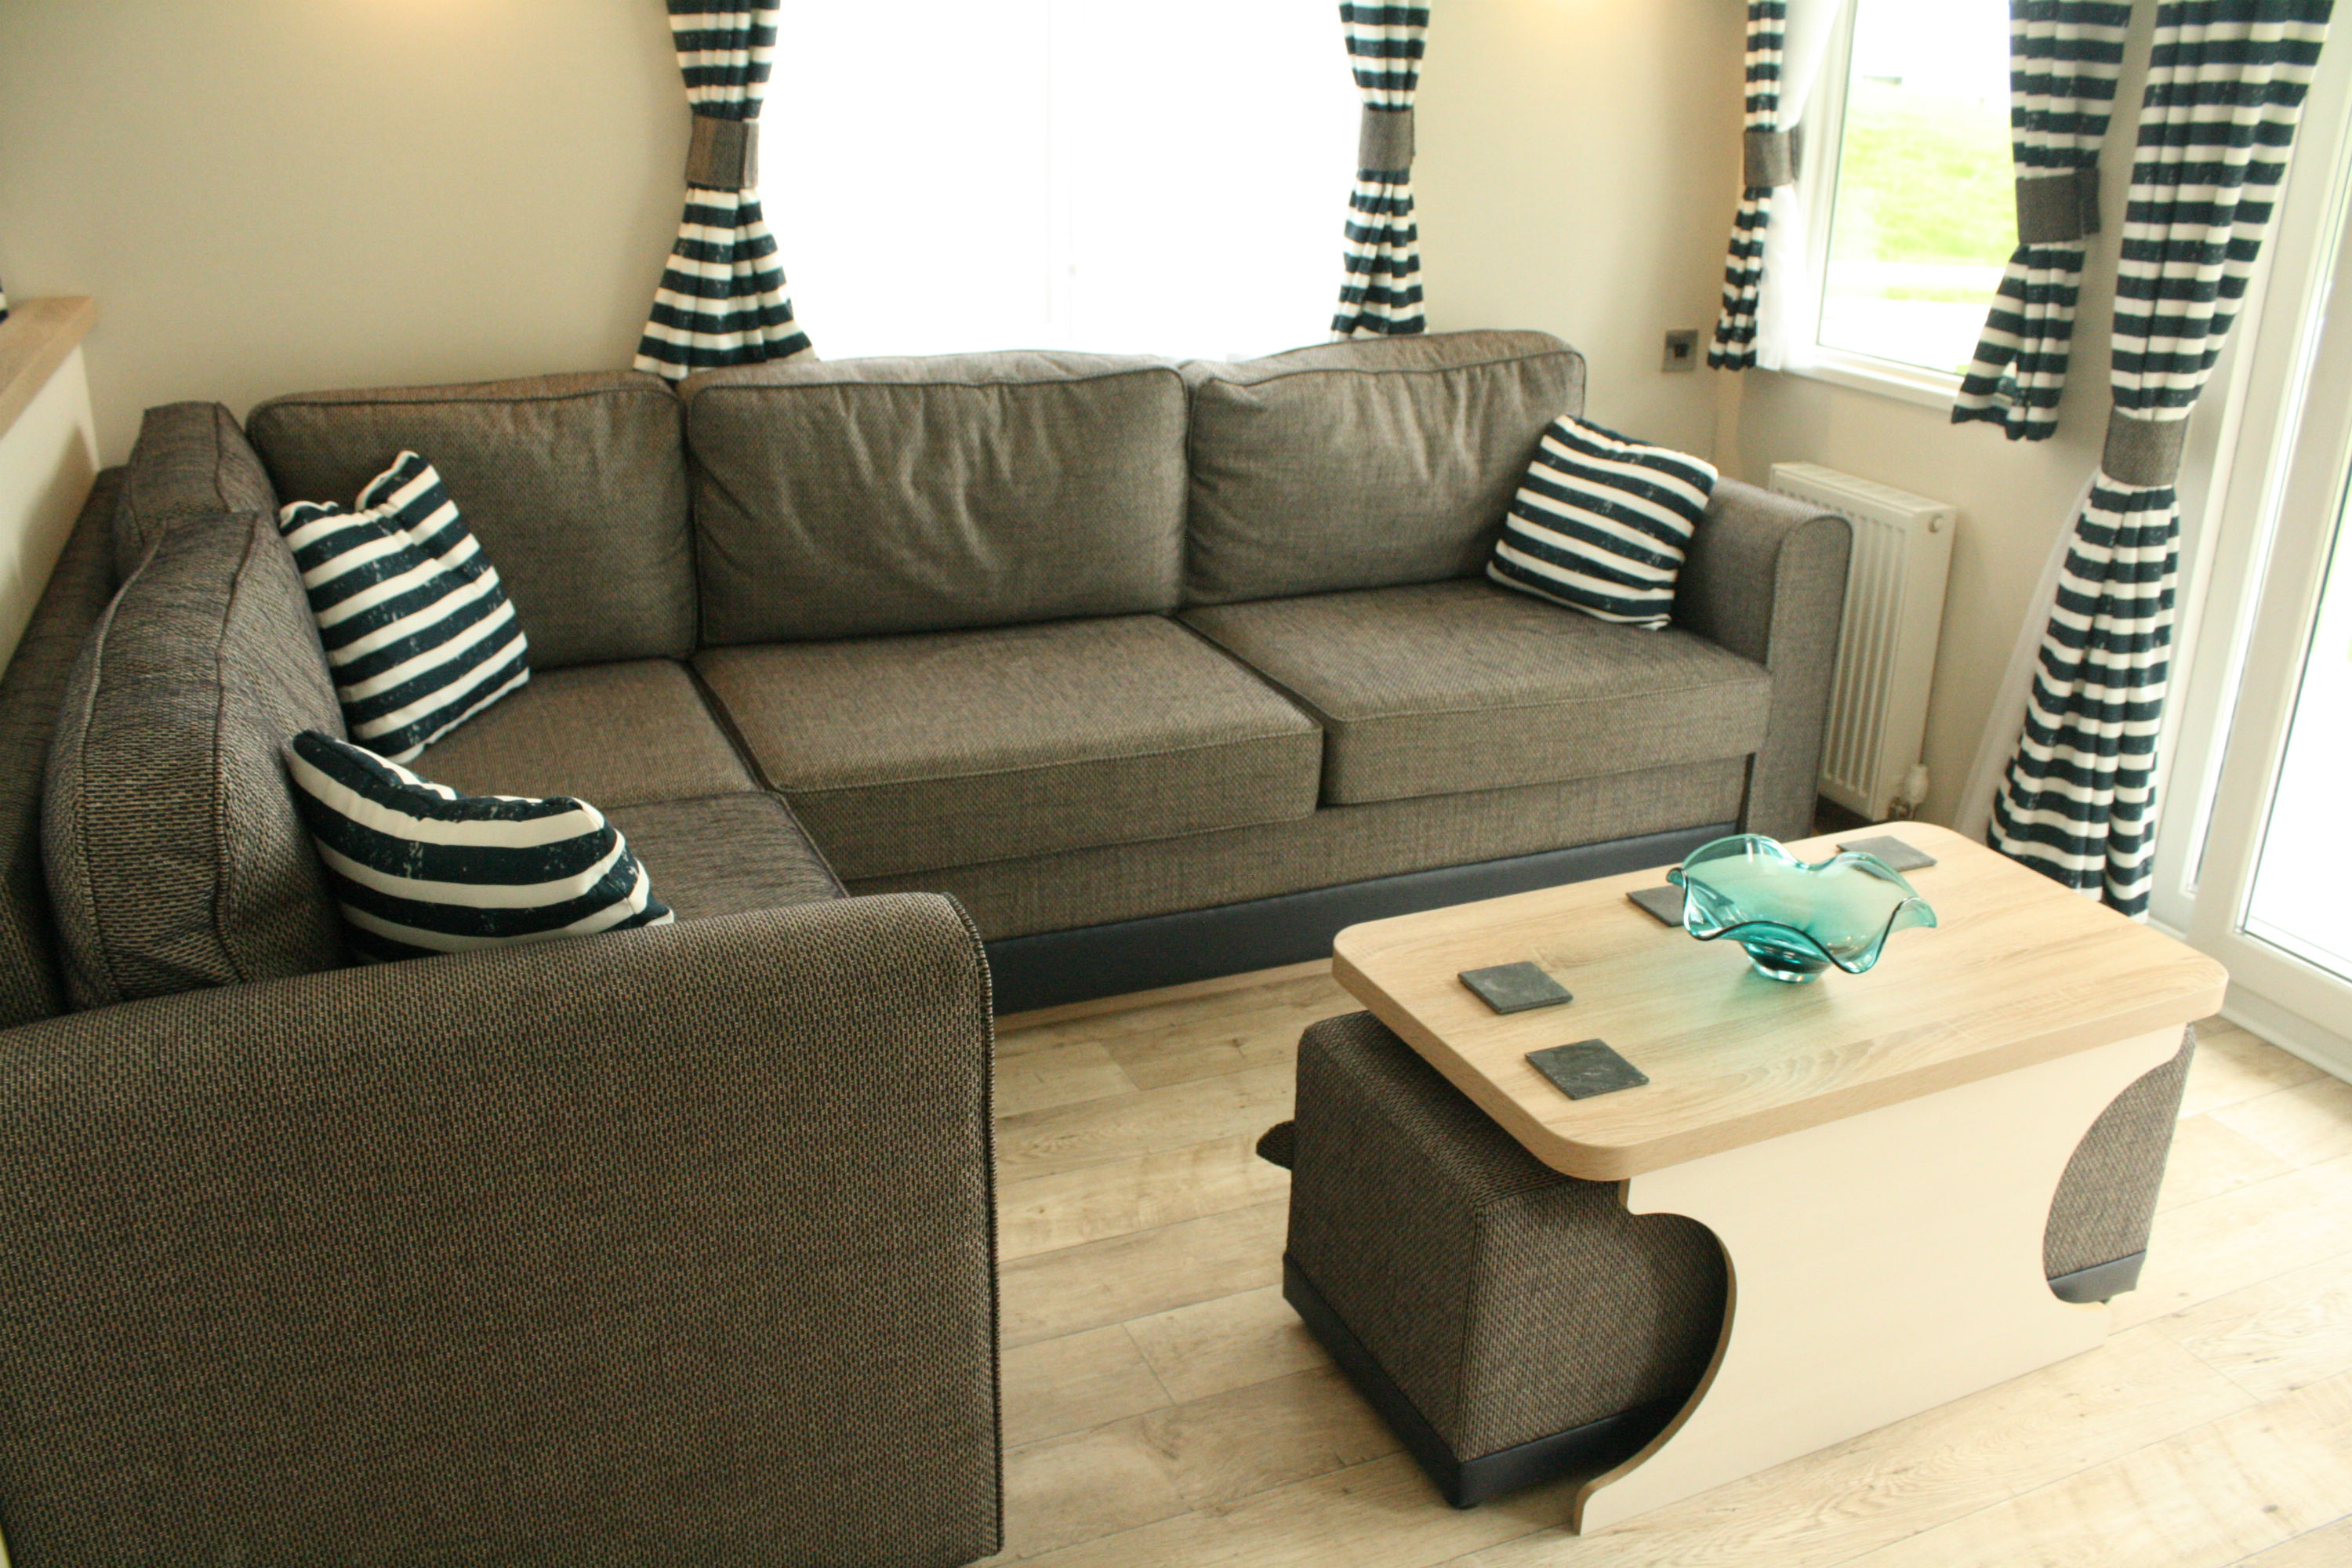 Striped seating and curtains